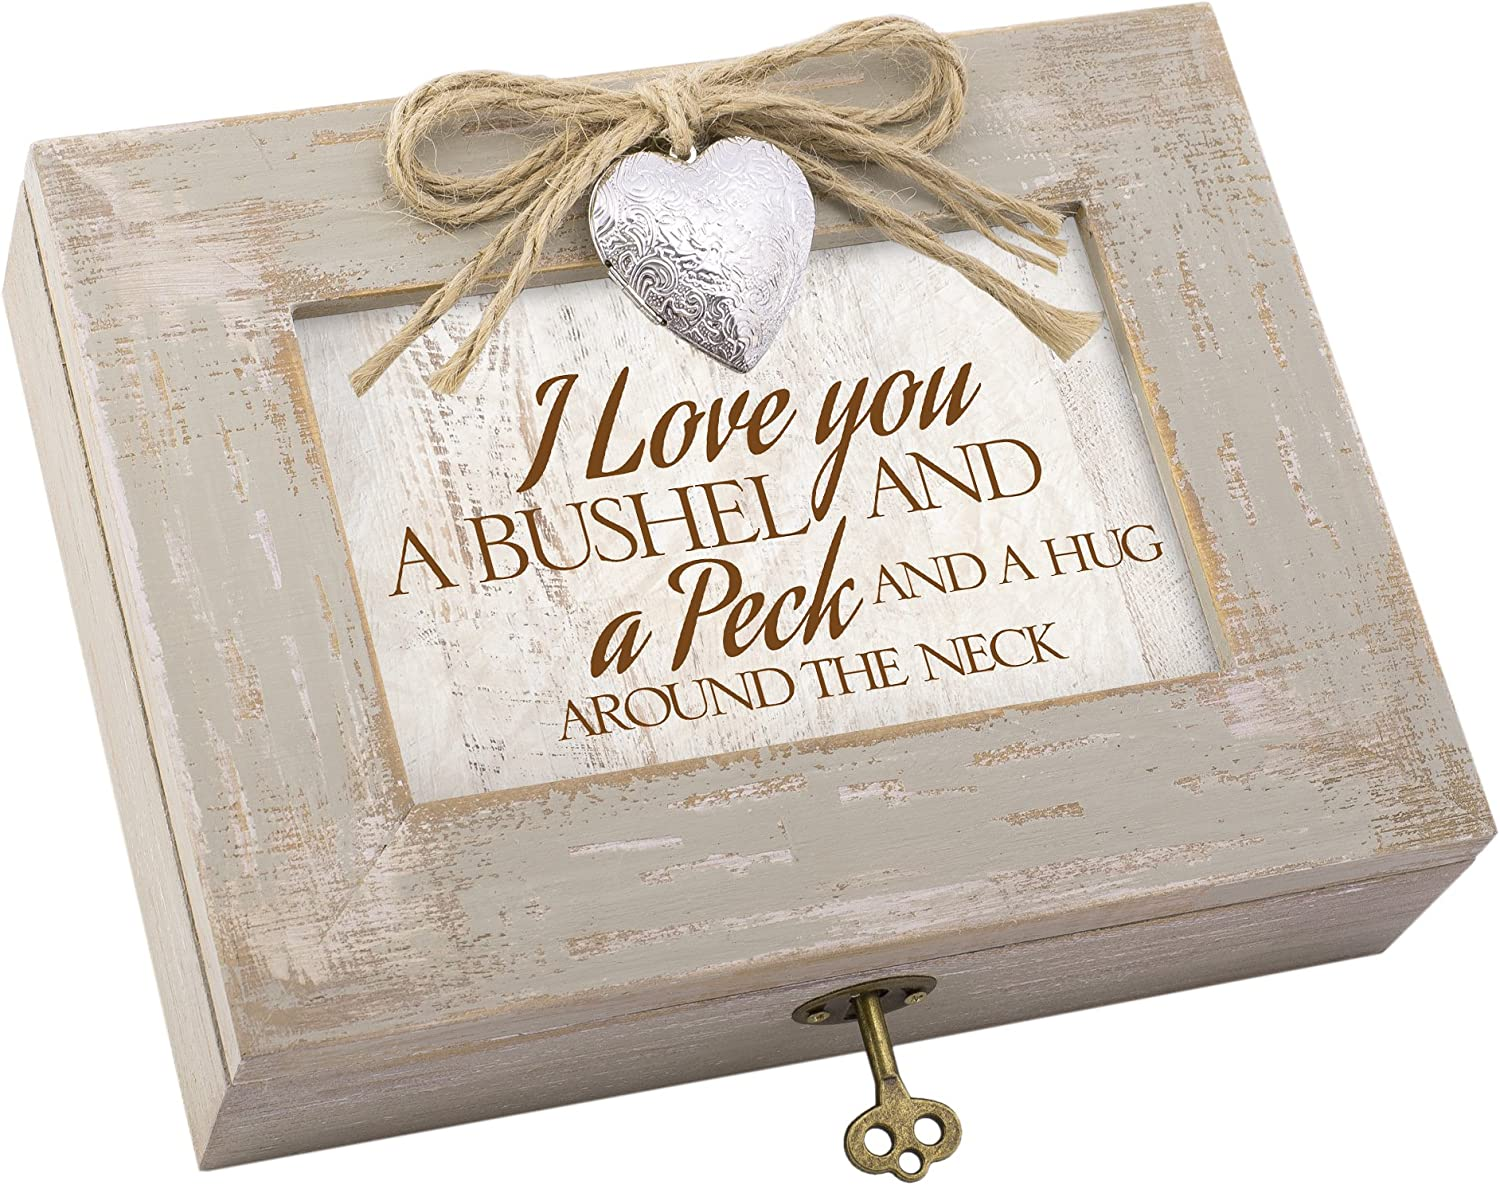 Cottage Garden Love You Bushel Peck Hug Ivory Distressed Jewelry Music Box Plays Edelweiss